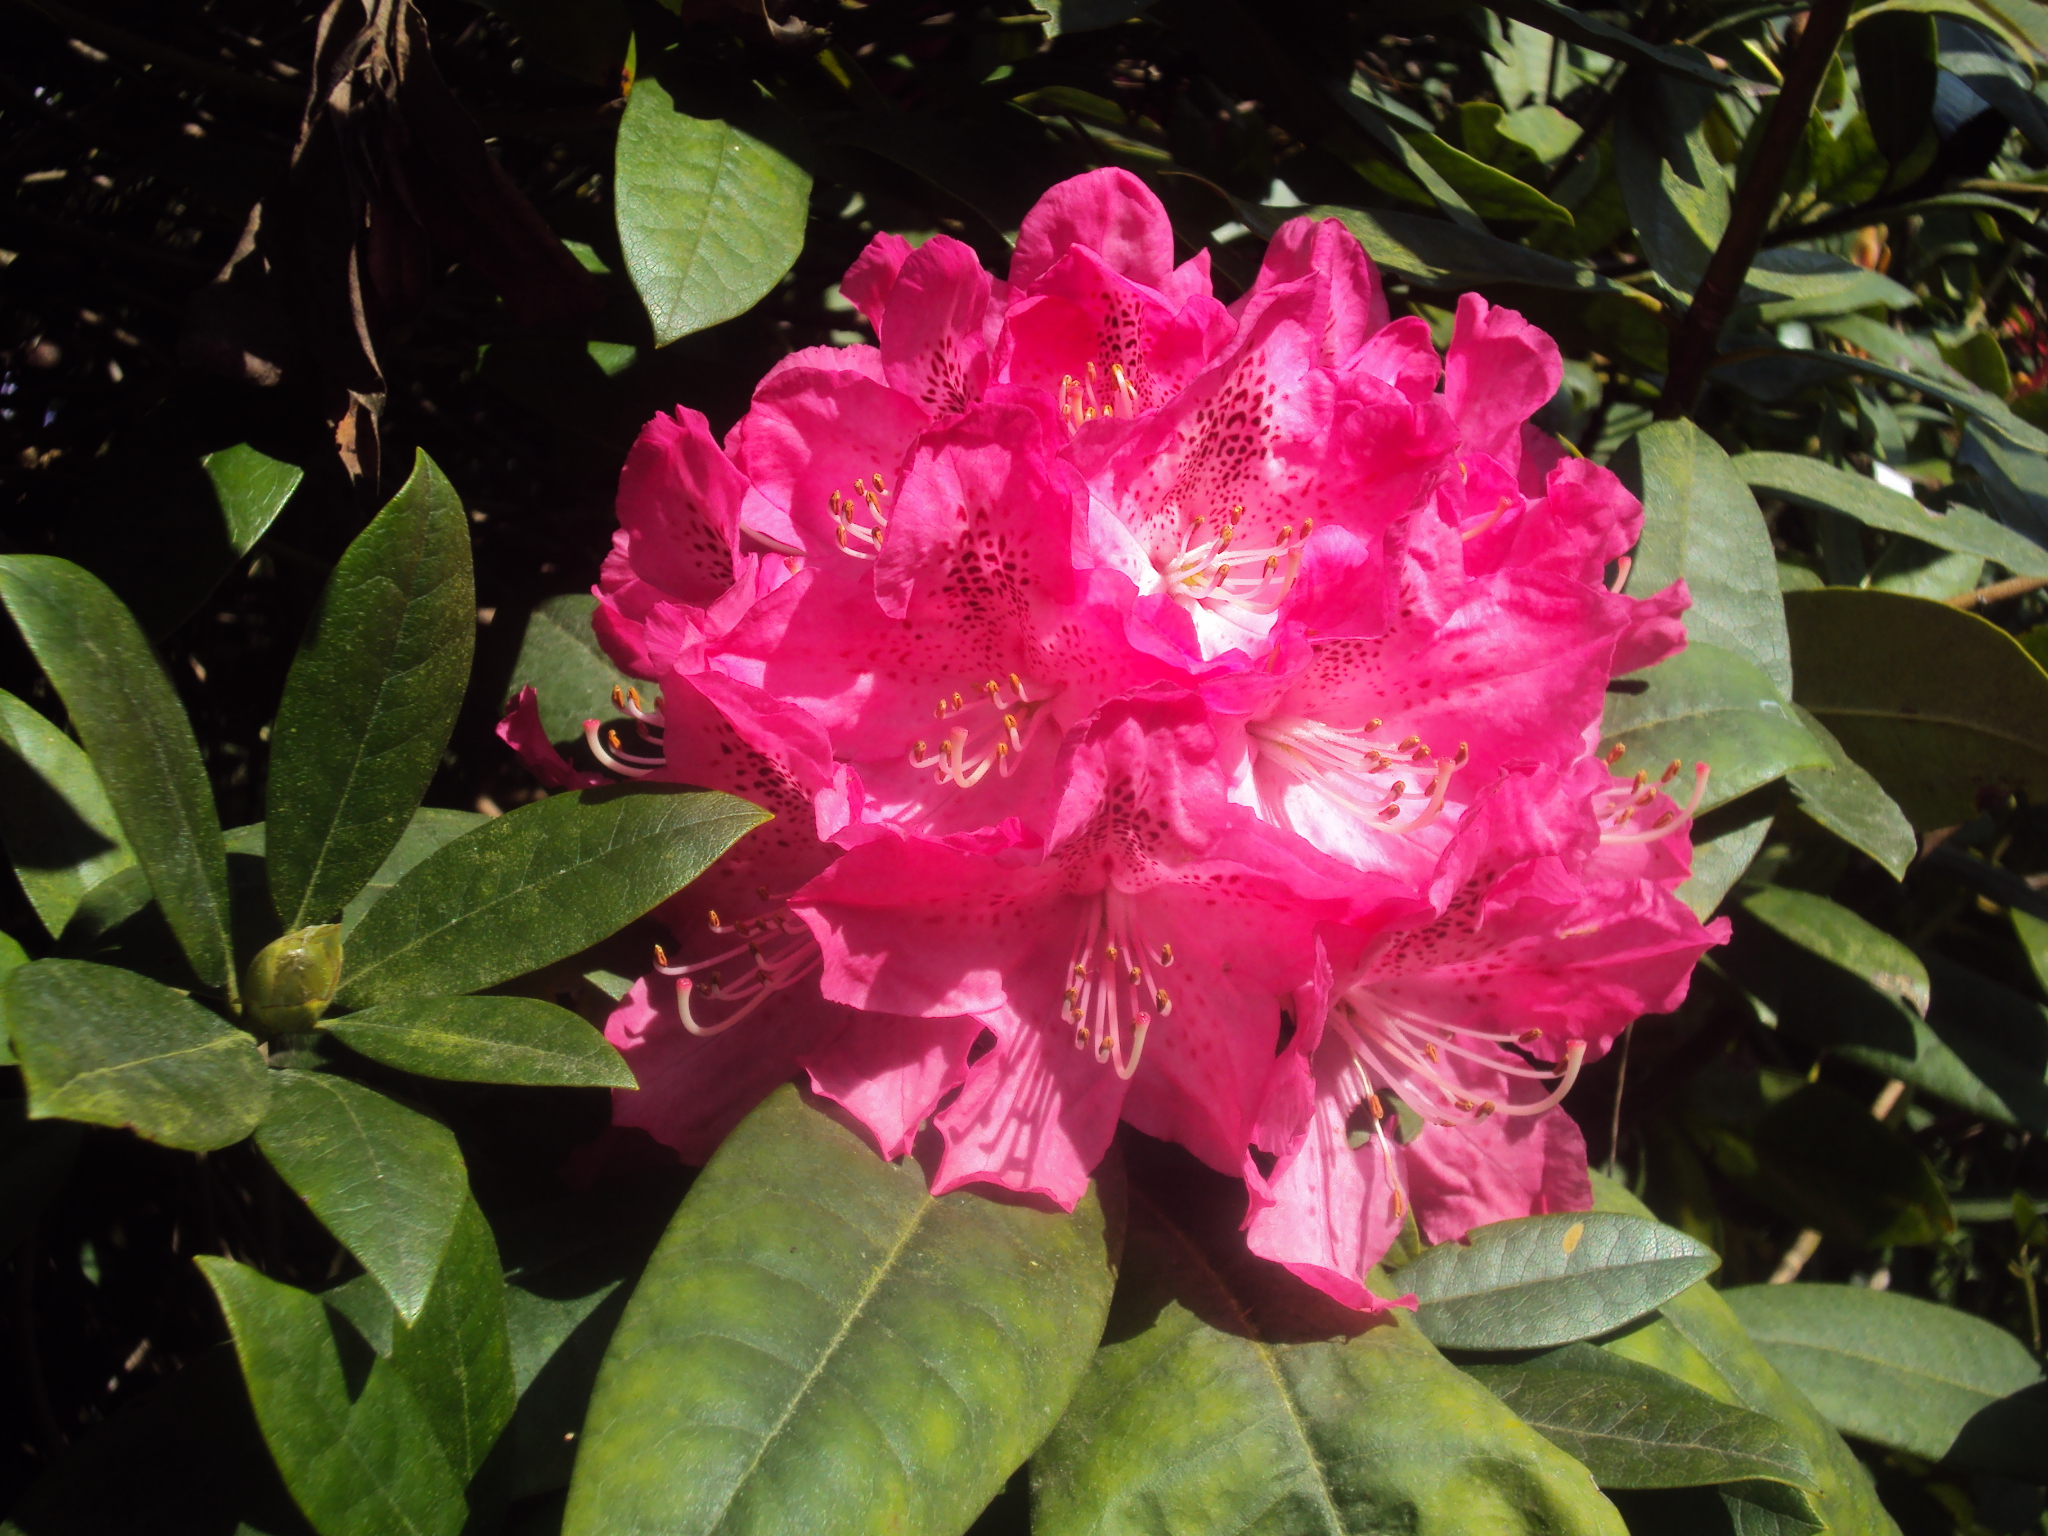 2) Rhododendron